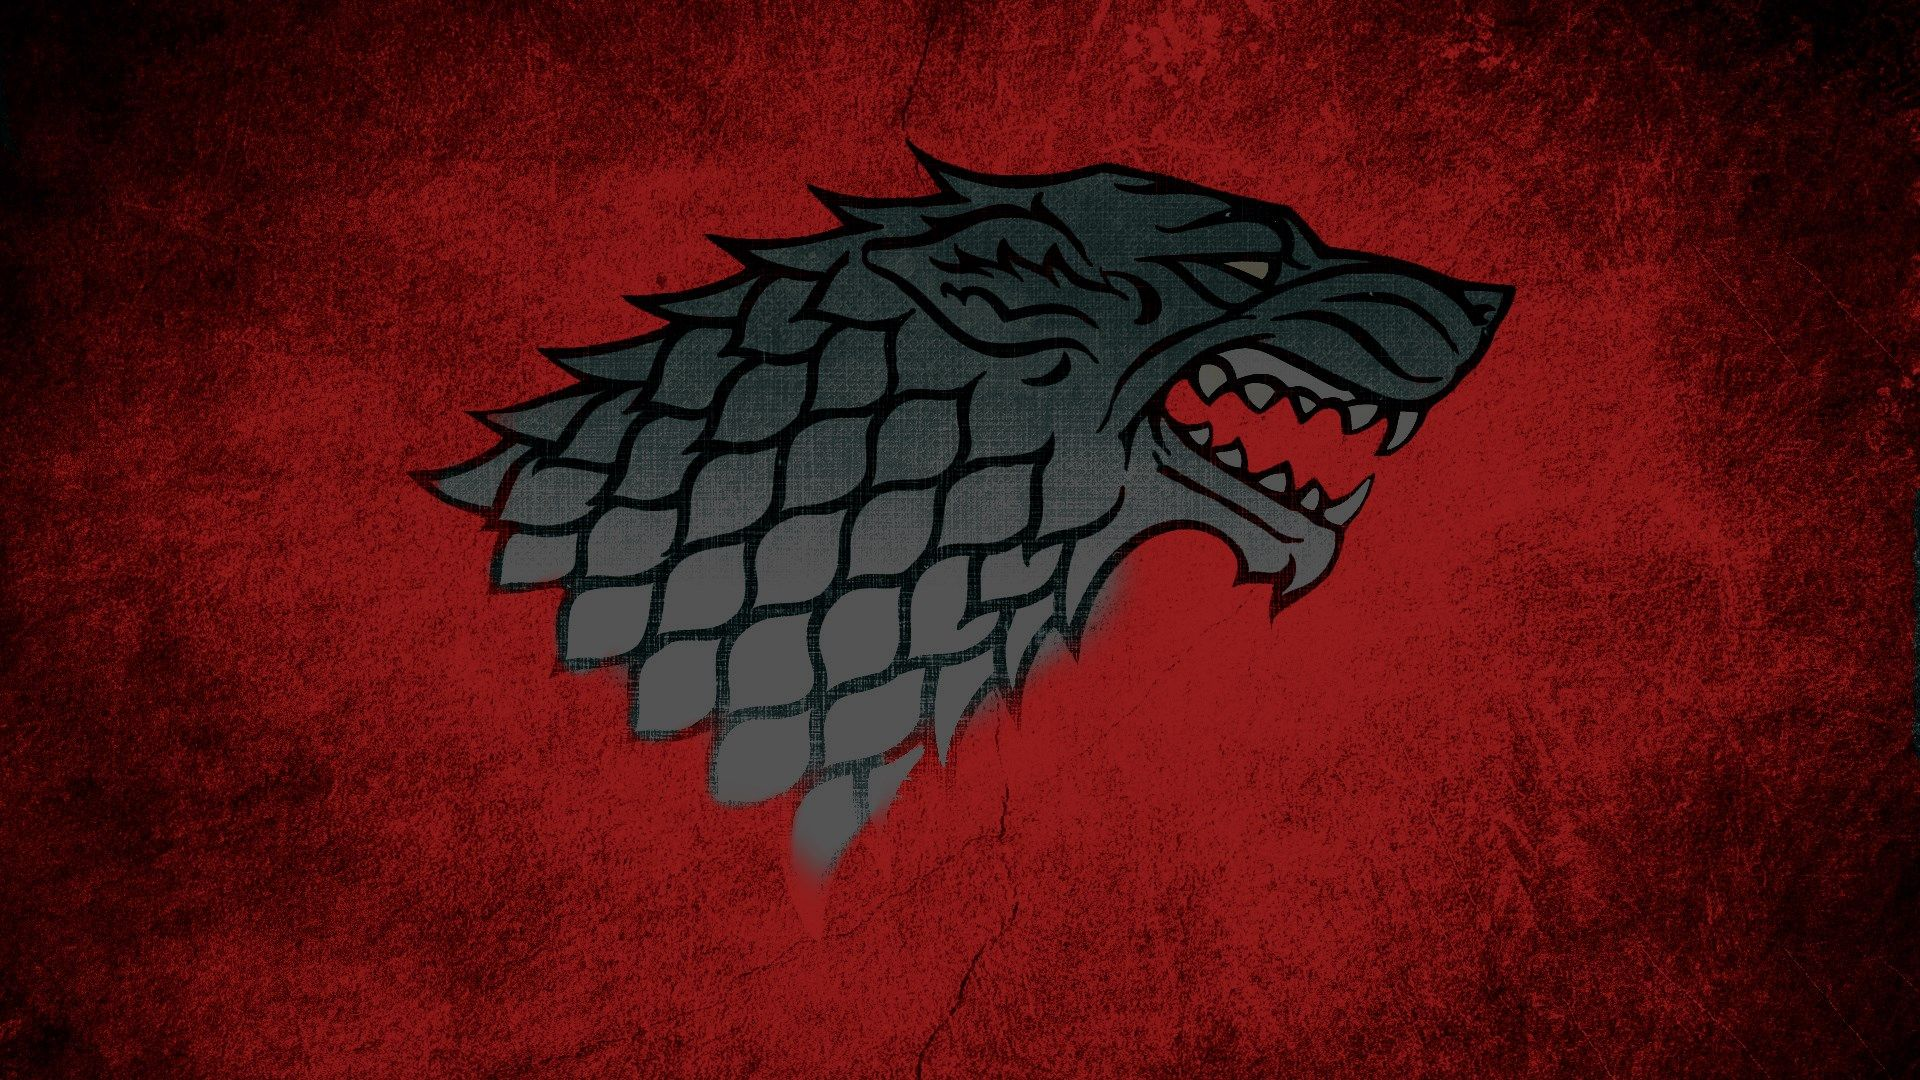 Game Of Thrones Wallpapers 1080p High Quality